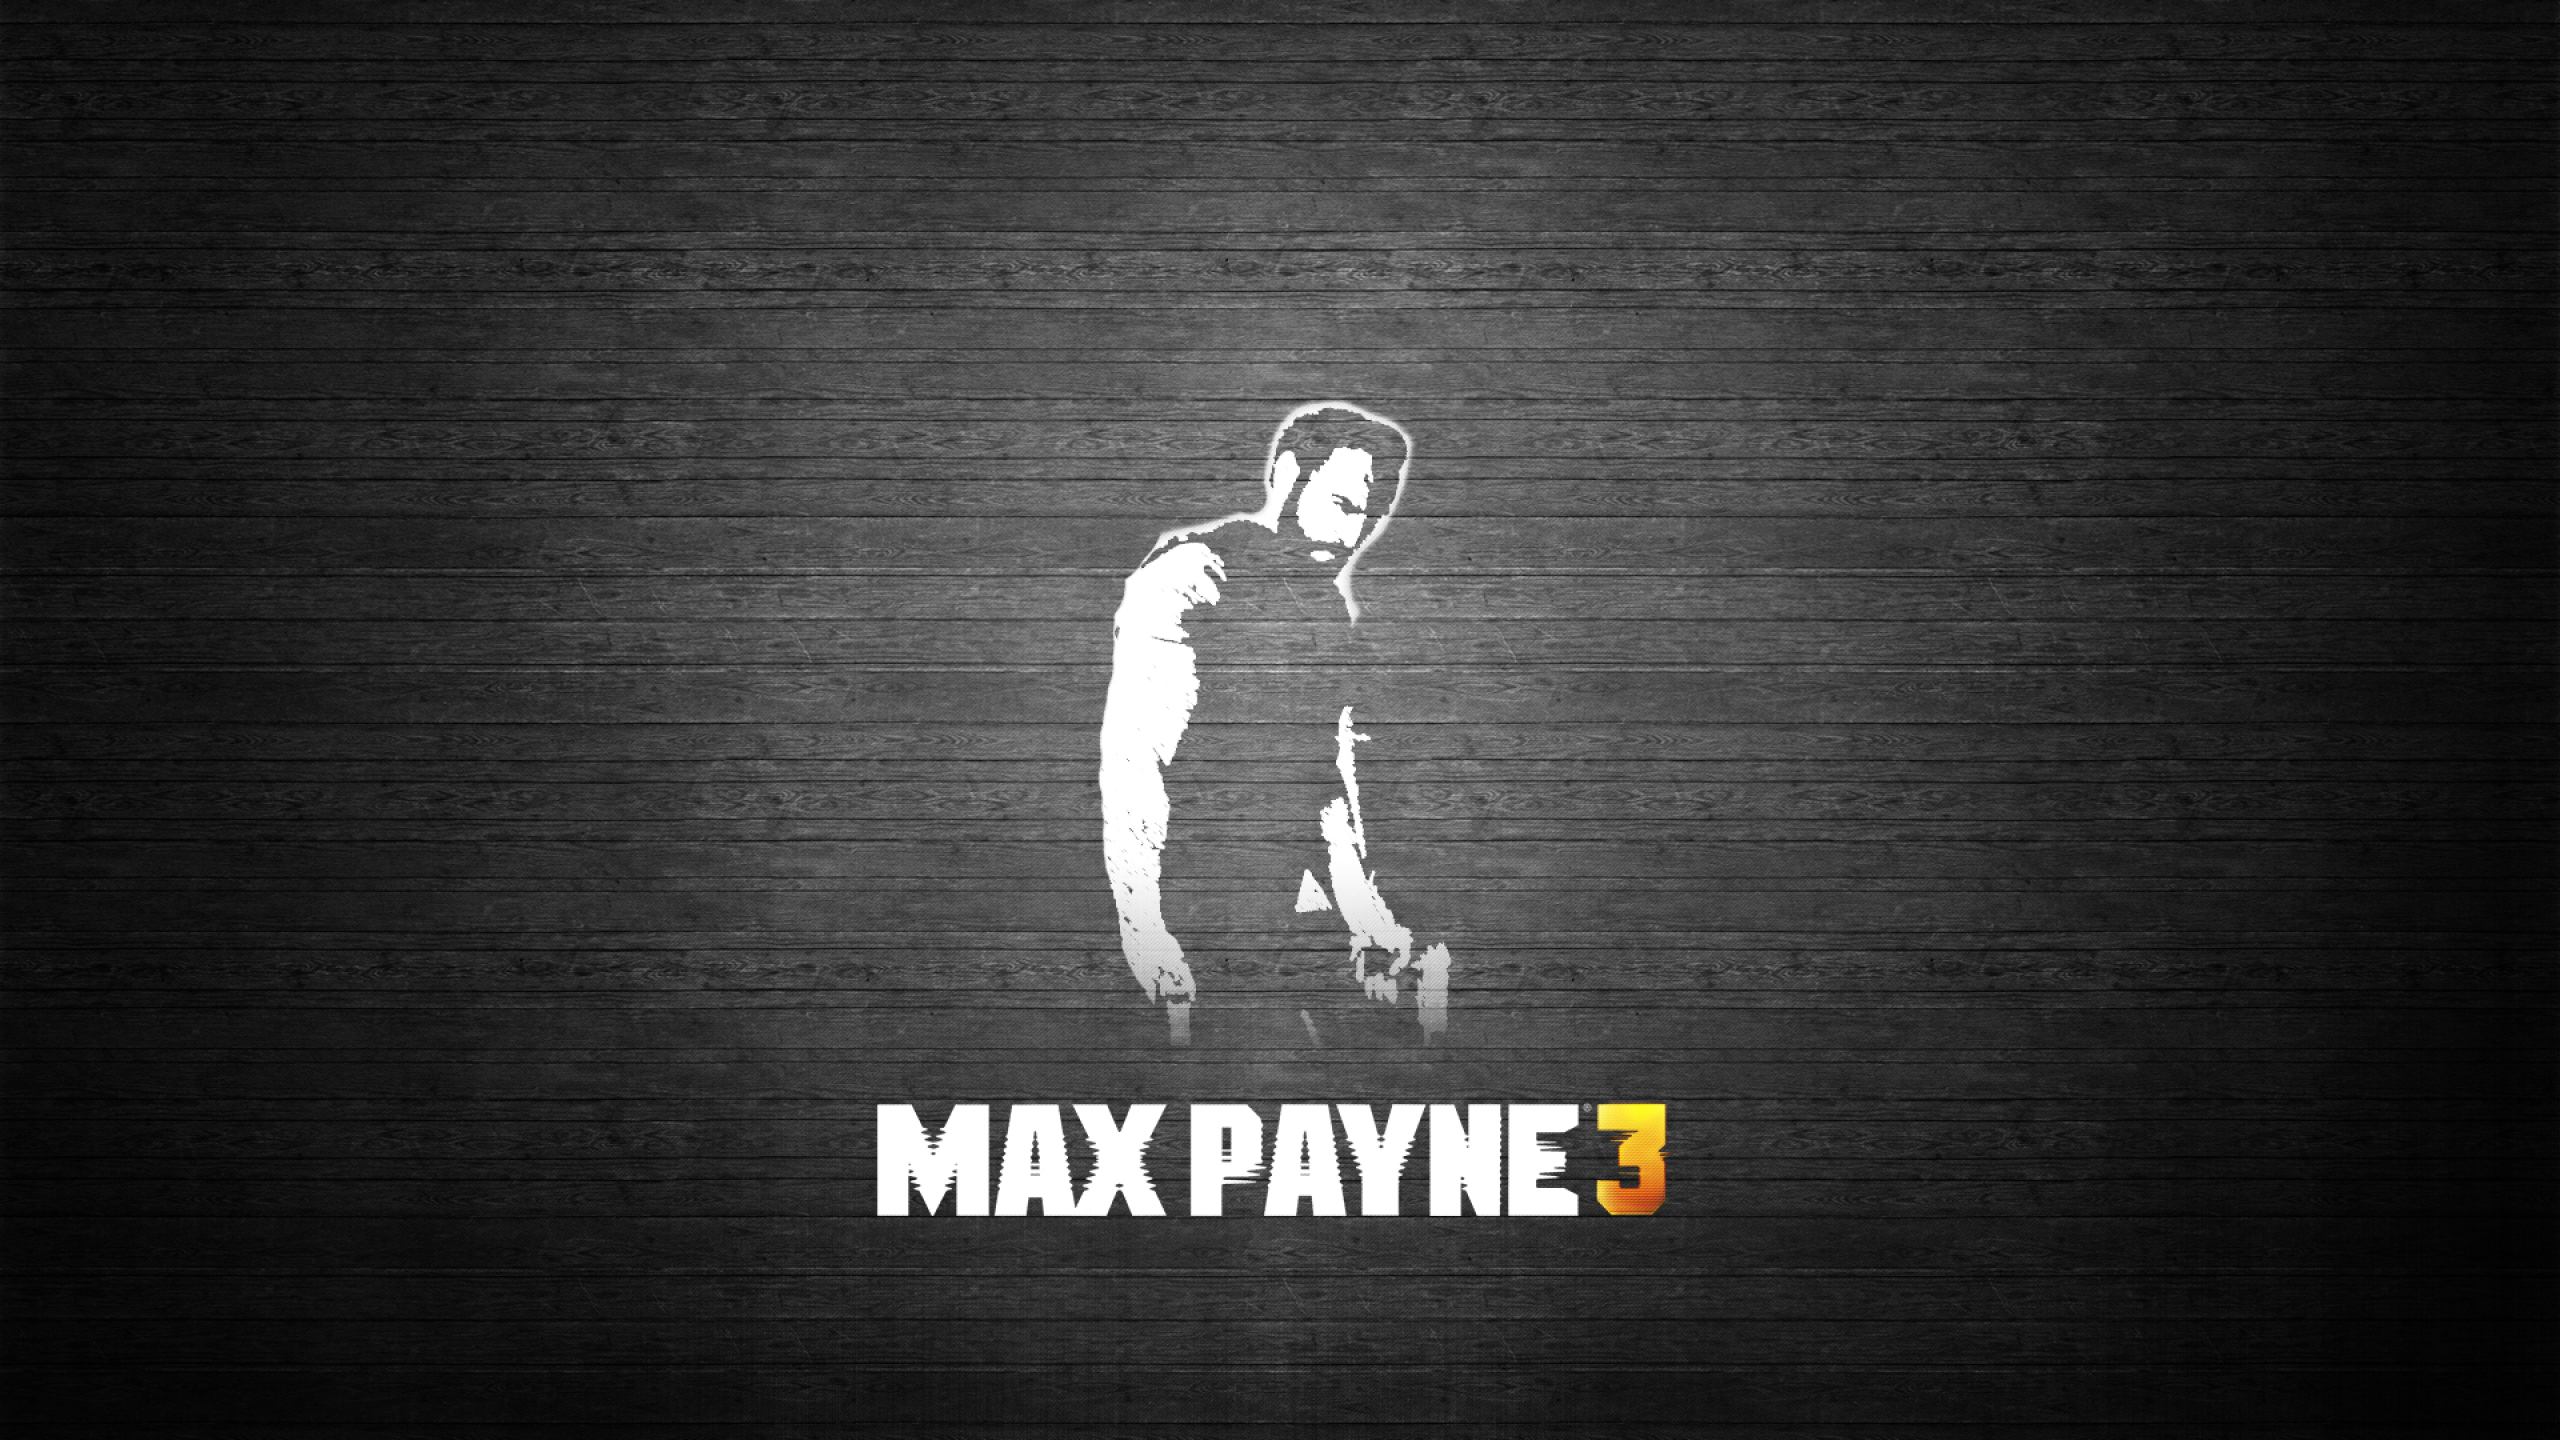 2560x1440 Max Payne 3 Minimalism Art 1440p Resolution Wallpaper